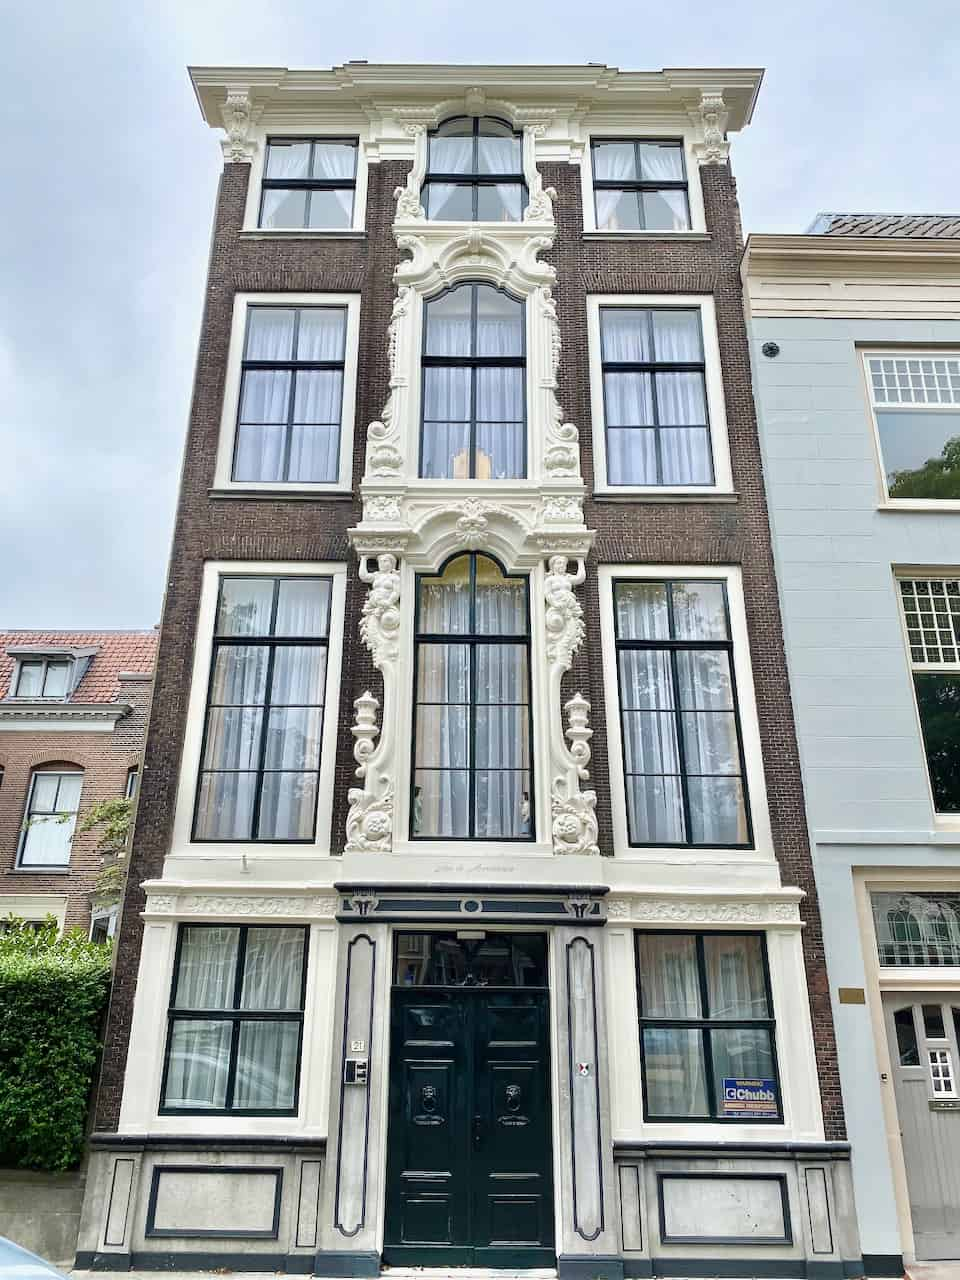 dordrecht-things-to-see-photo